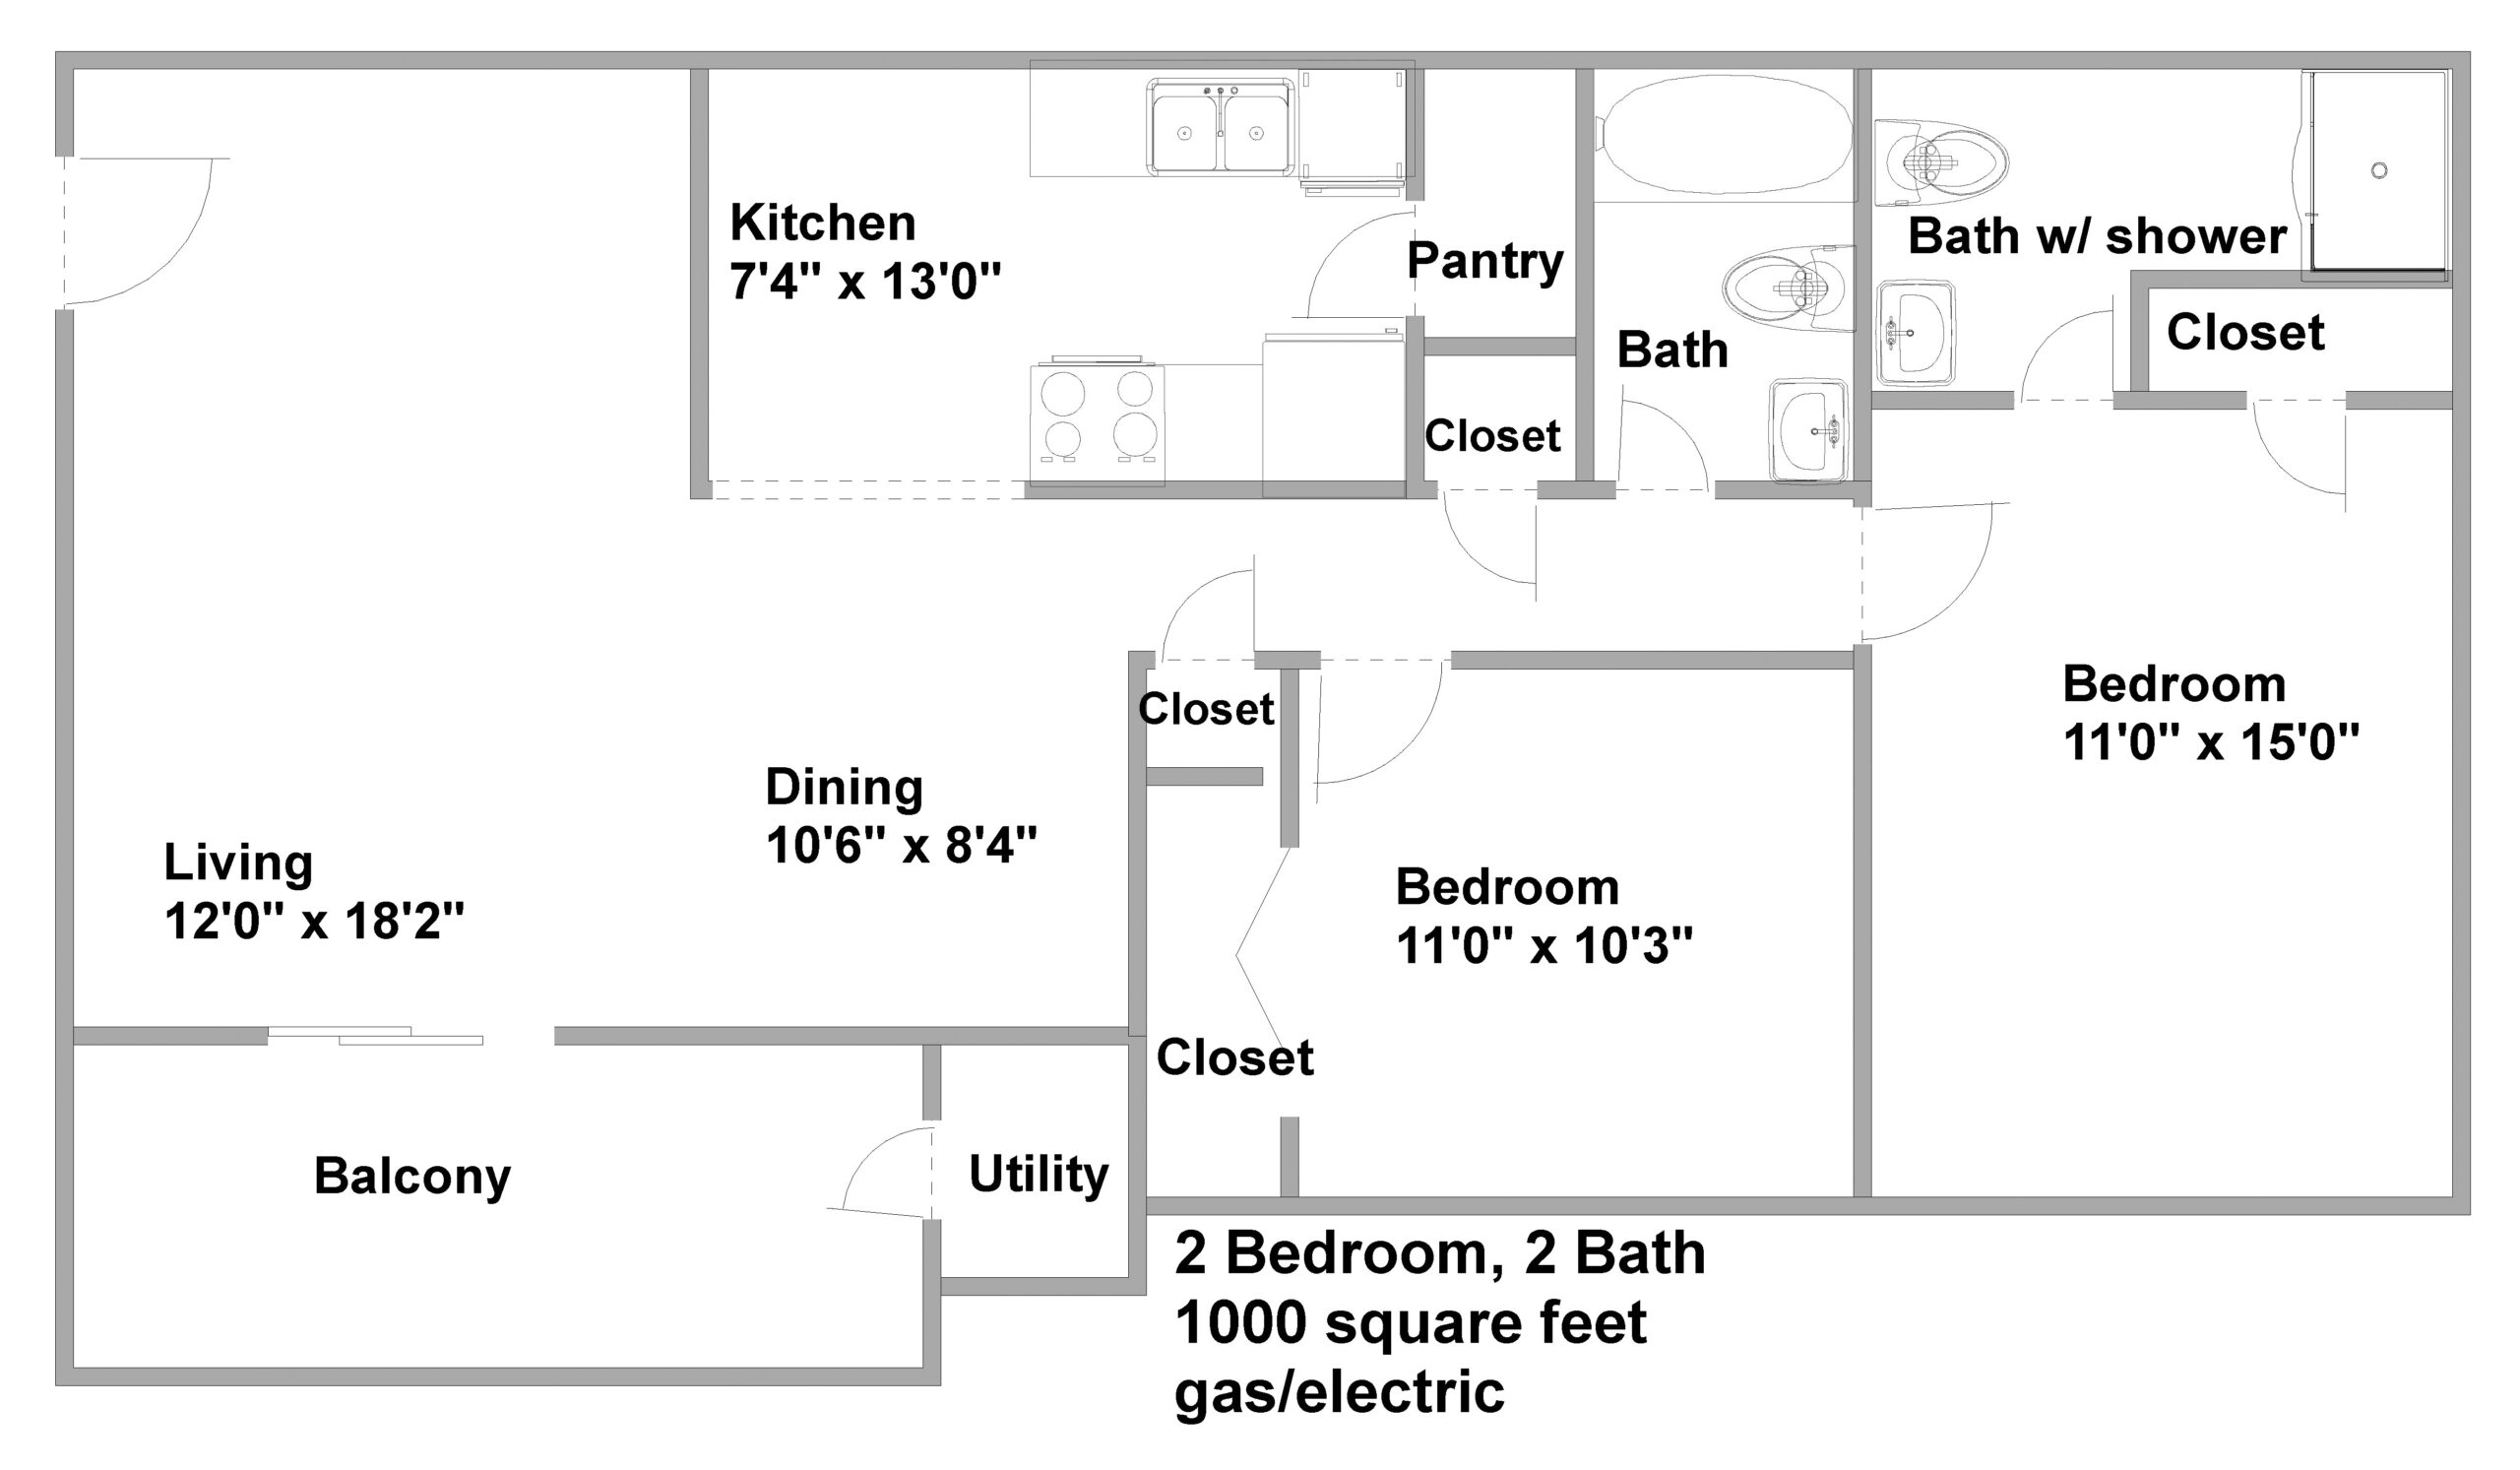 apartments in chapel hill 2 bedroom 2 bath floor plan